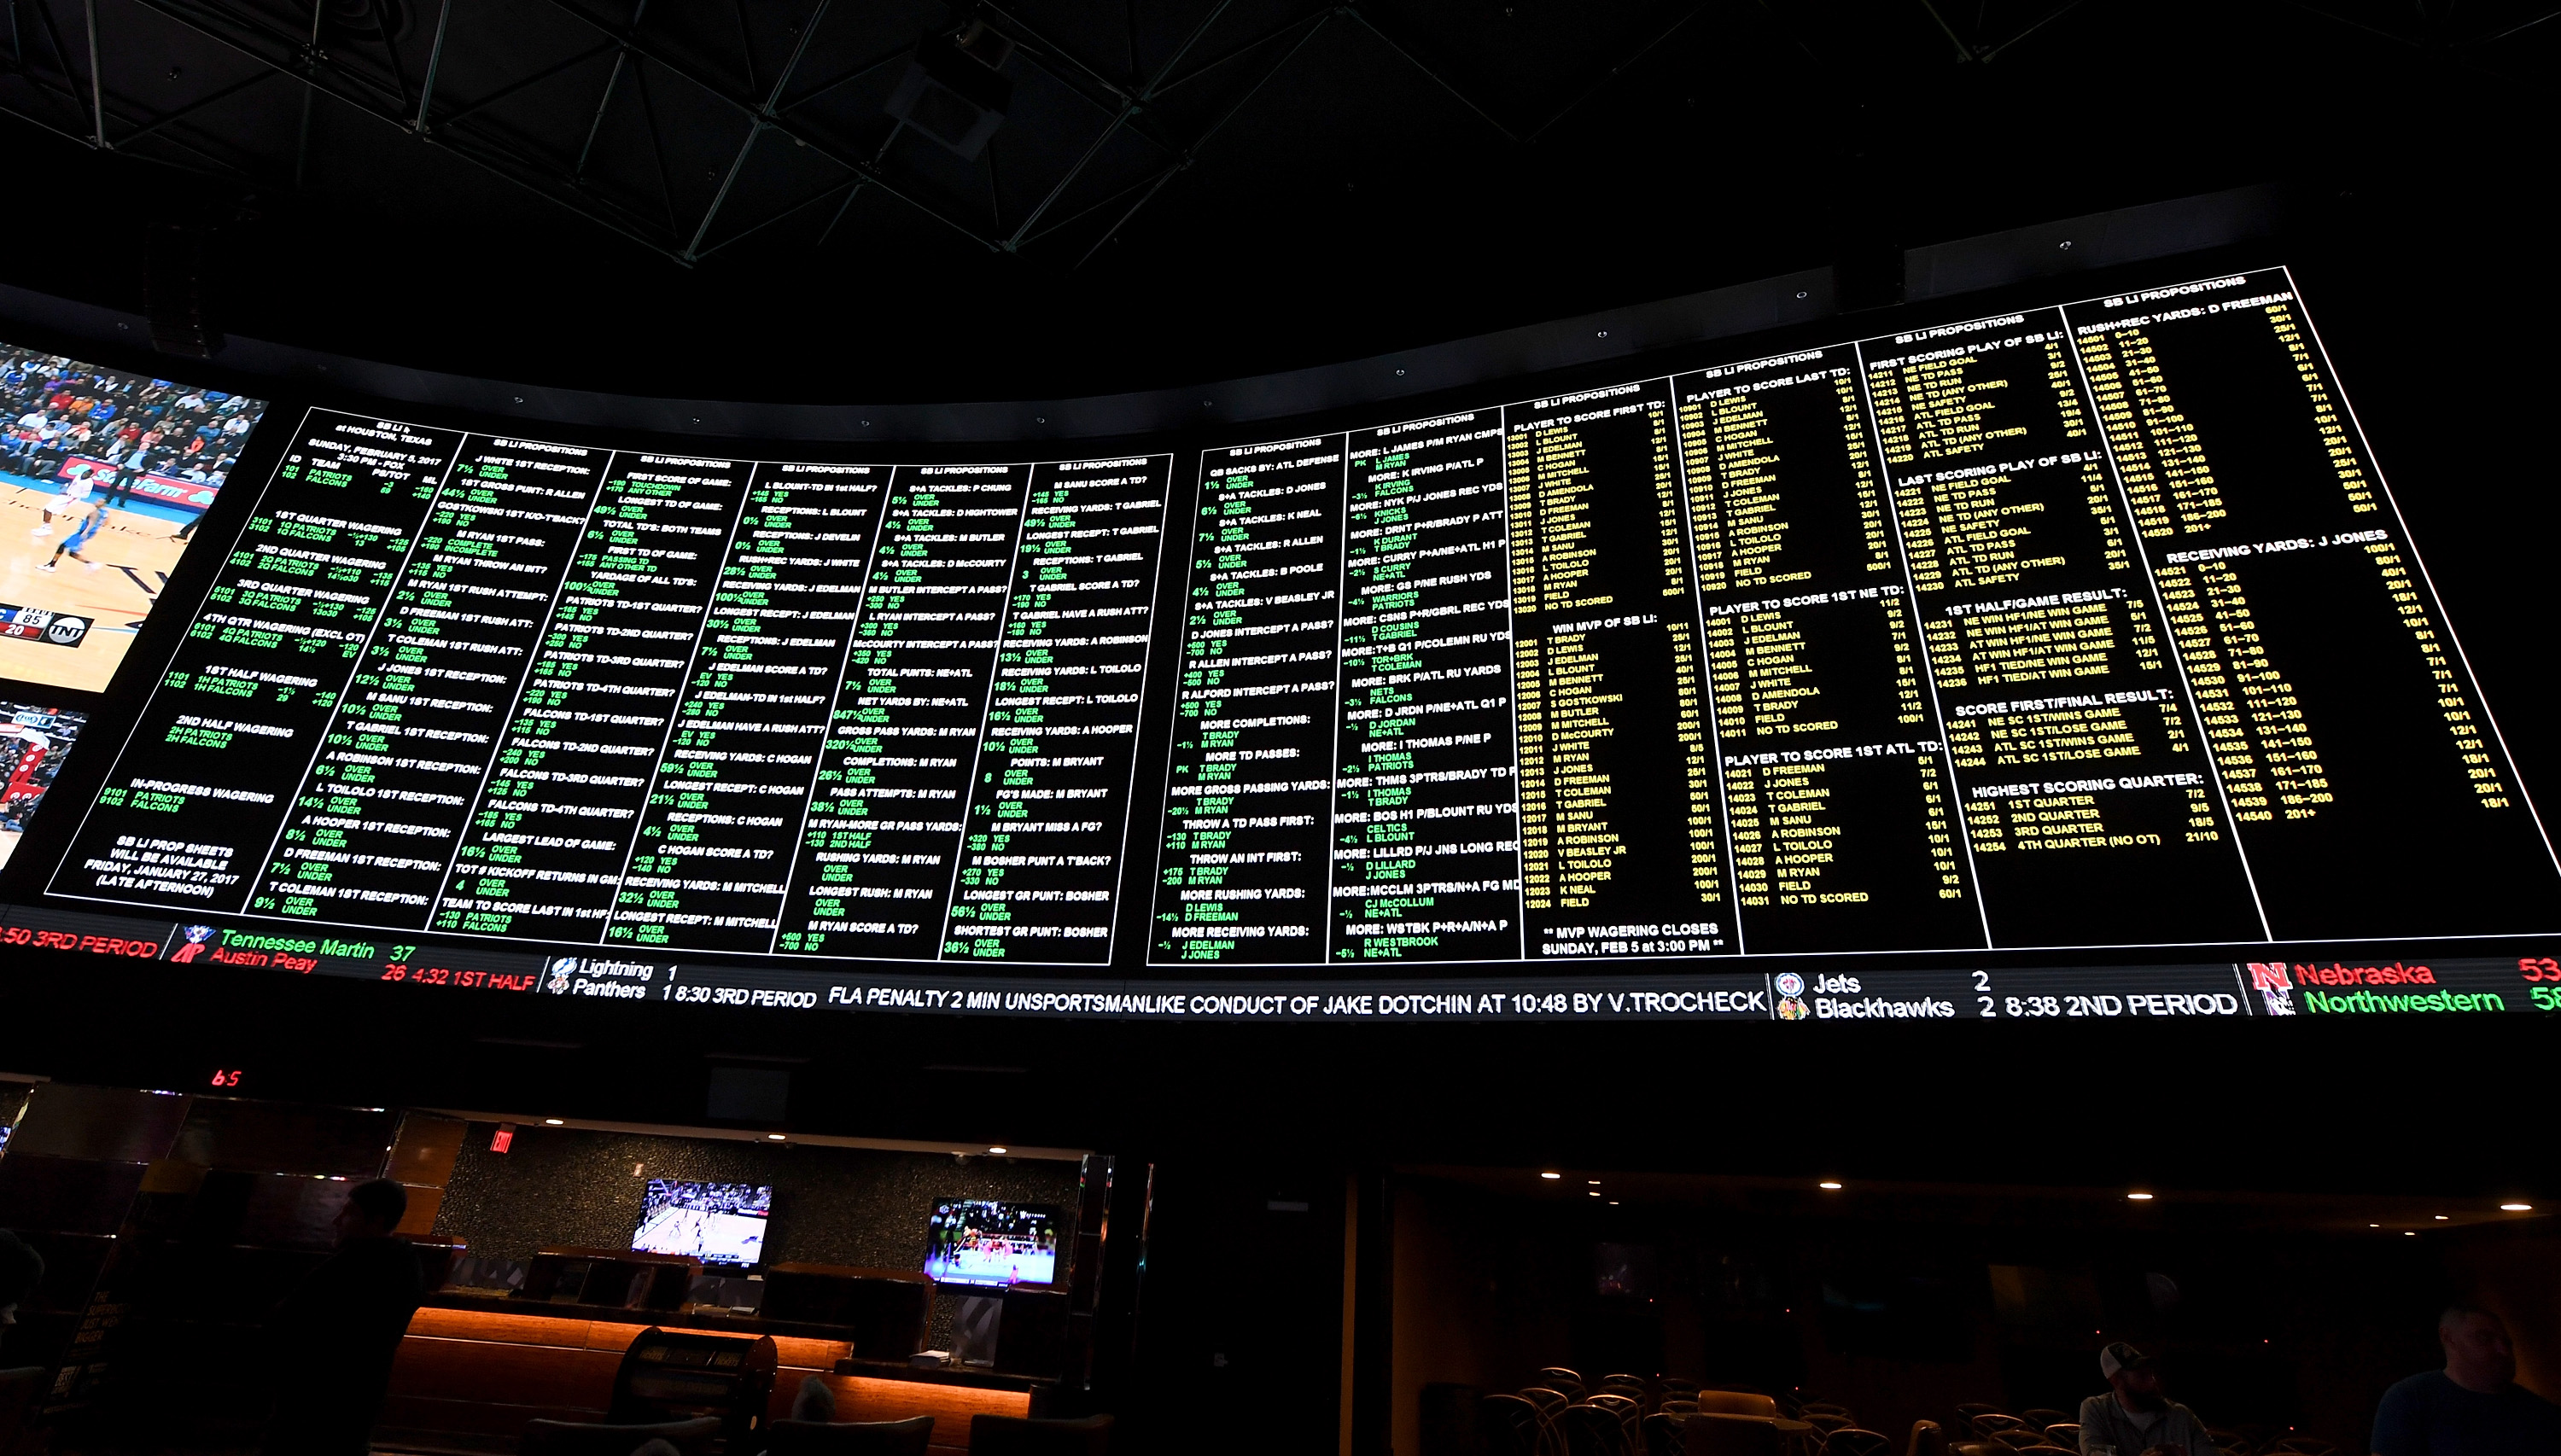 The betting line and some of the more than 400 proposition bets for Super Bowl LI between the Atlanta Falcons and the New England Patriots are displayed at the Race & Sports SuperBook at the Westgate Las Vegas Resort & Casino. (Getty Images)